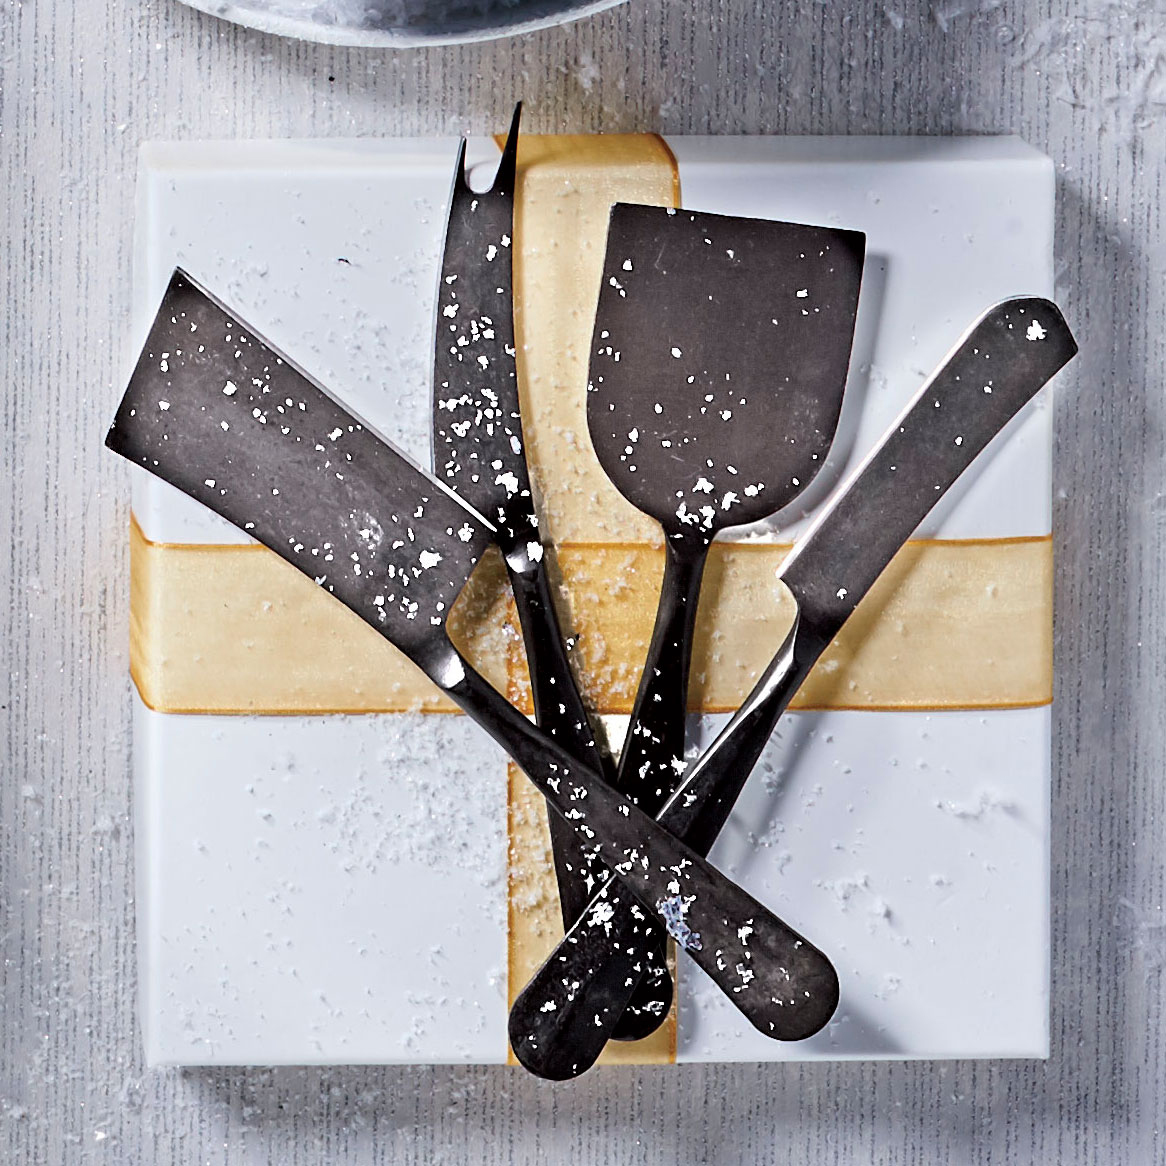 Slate Black Cheese Knives